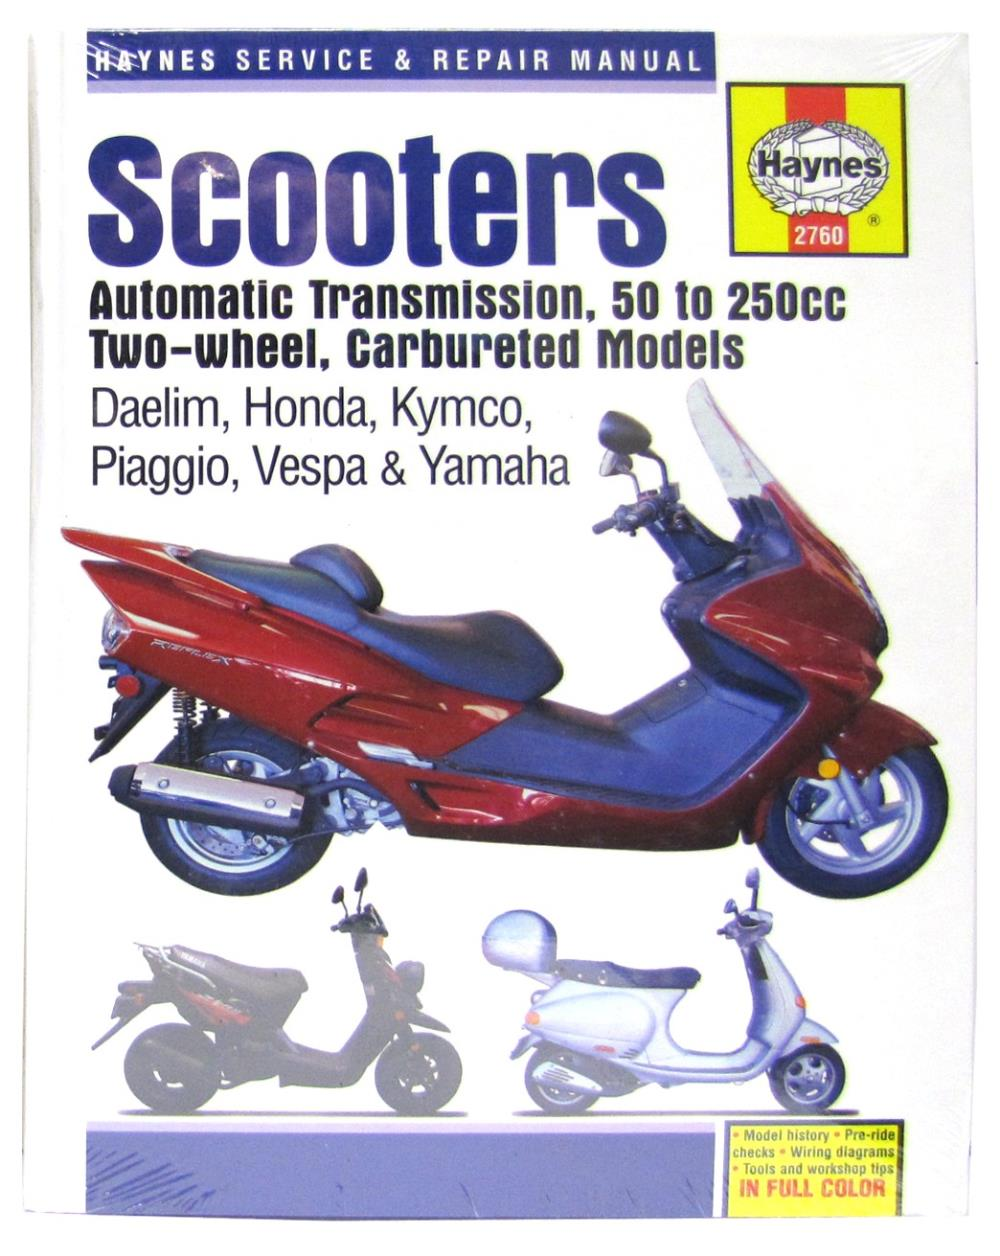 Workshop Manual Scooters Daelim Honda Kymco Piaggio Vespa Engine Diagram Description